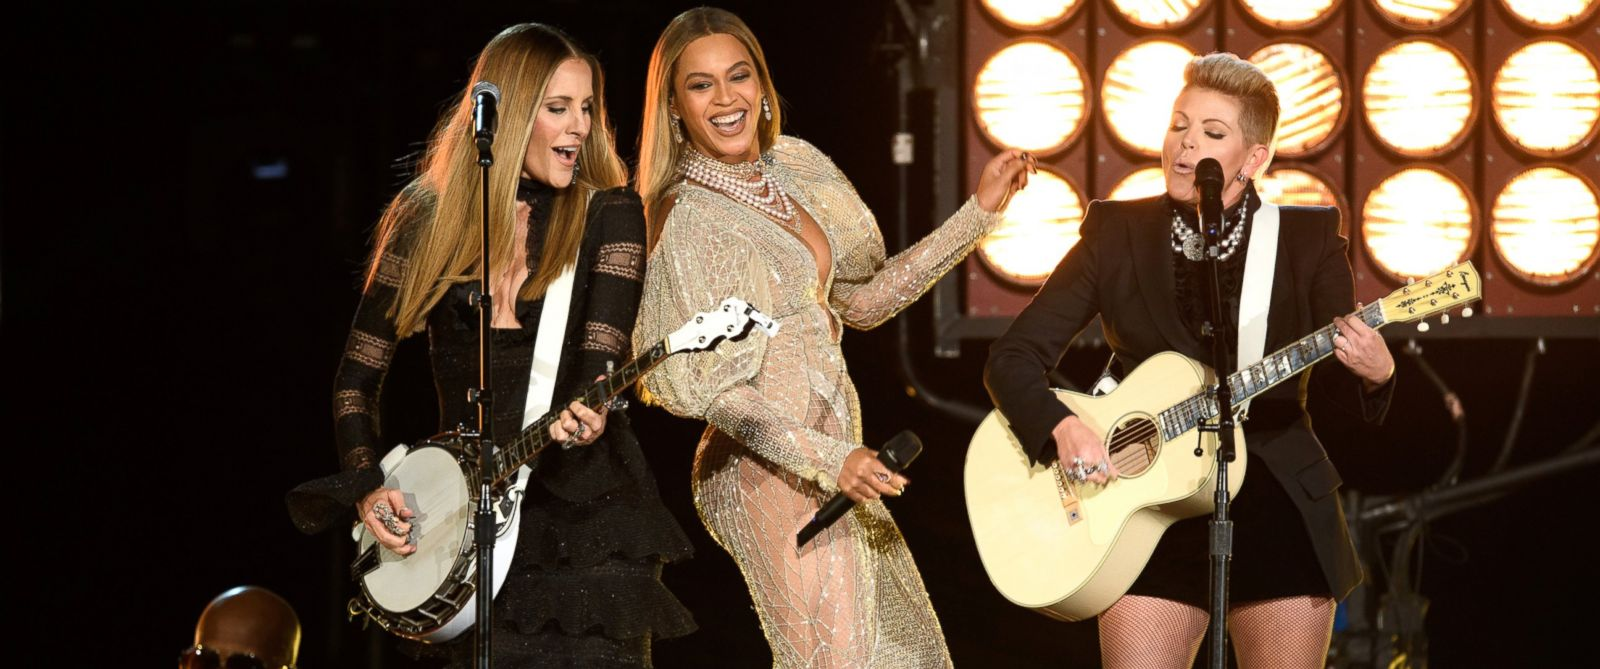 PHOTO: Emily Robison, Beyonce and Natalie Maines at The 50th Annual CMA Awards broadcast live from the Bridgestone Arena in Nashville, November 2, 2016.